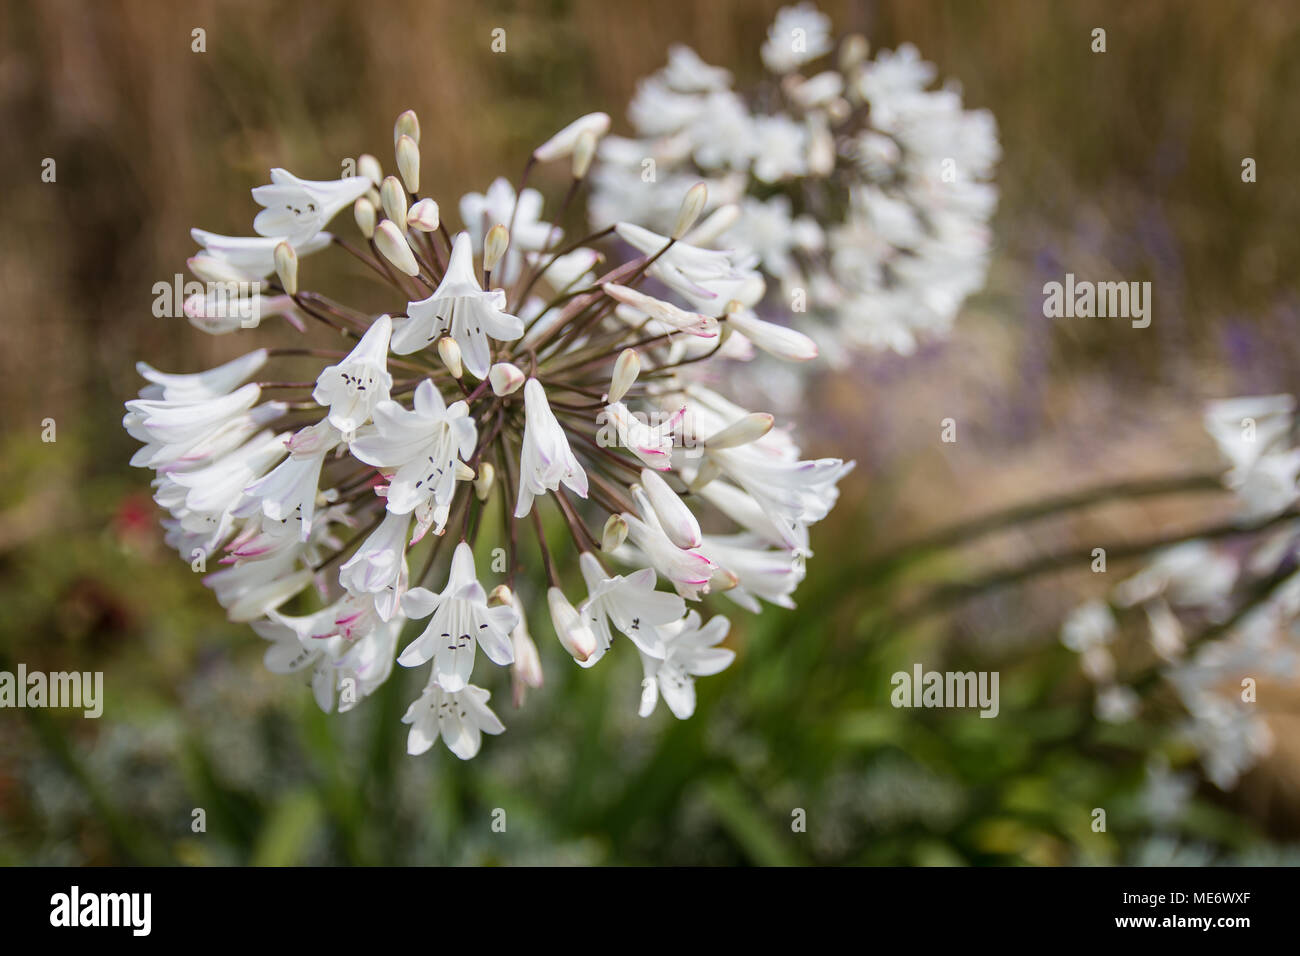 Flower creation stock photos flower creation stock images alamy english country garden provides the perfect opportunity to photograph some beautiful flowers stock image izmirmasajfo